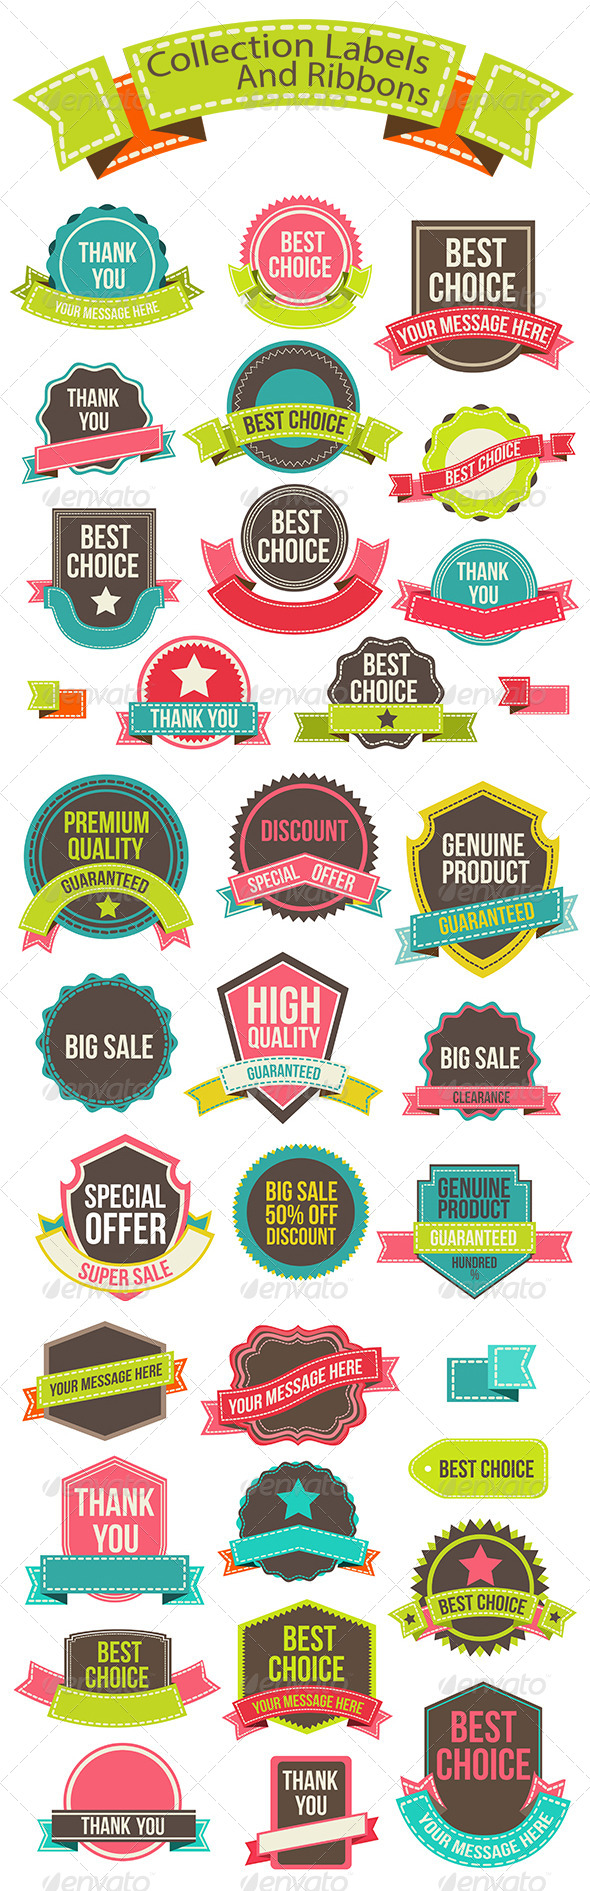 GraphicRiver Collection Labels and Ribbons 8240177